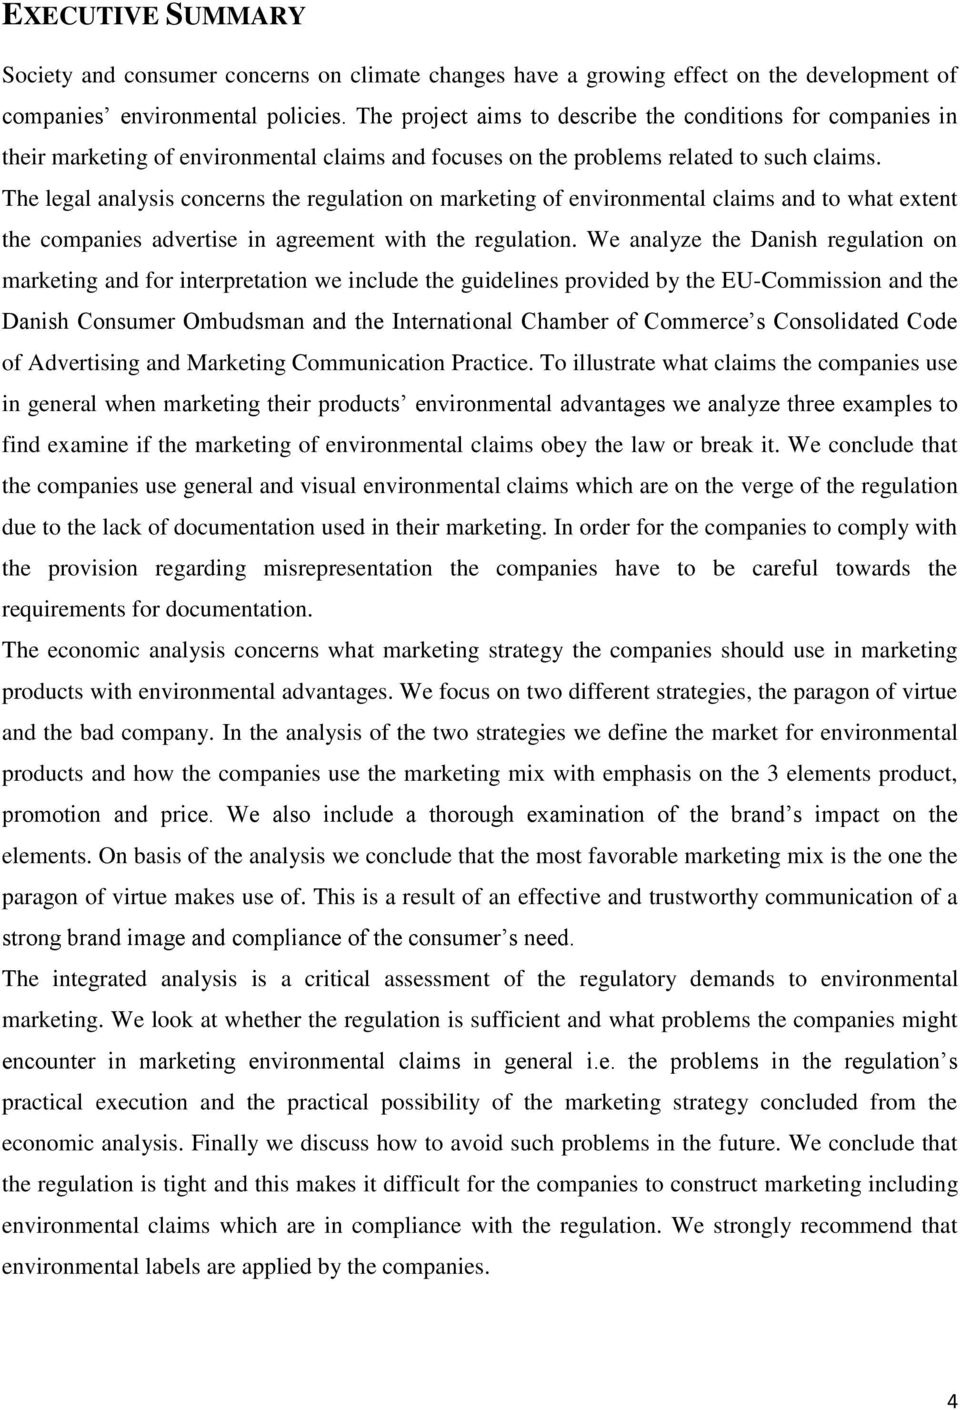 The legal analysis concerns the regulation on marketing of environmental claims and to what extent the companies advertise in agreement with the regulation.